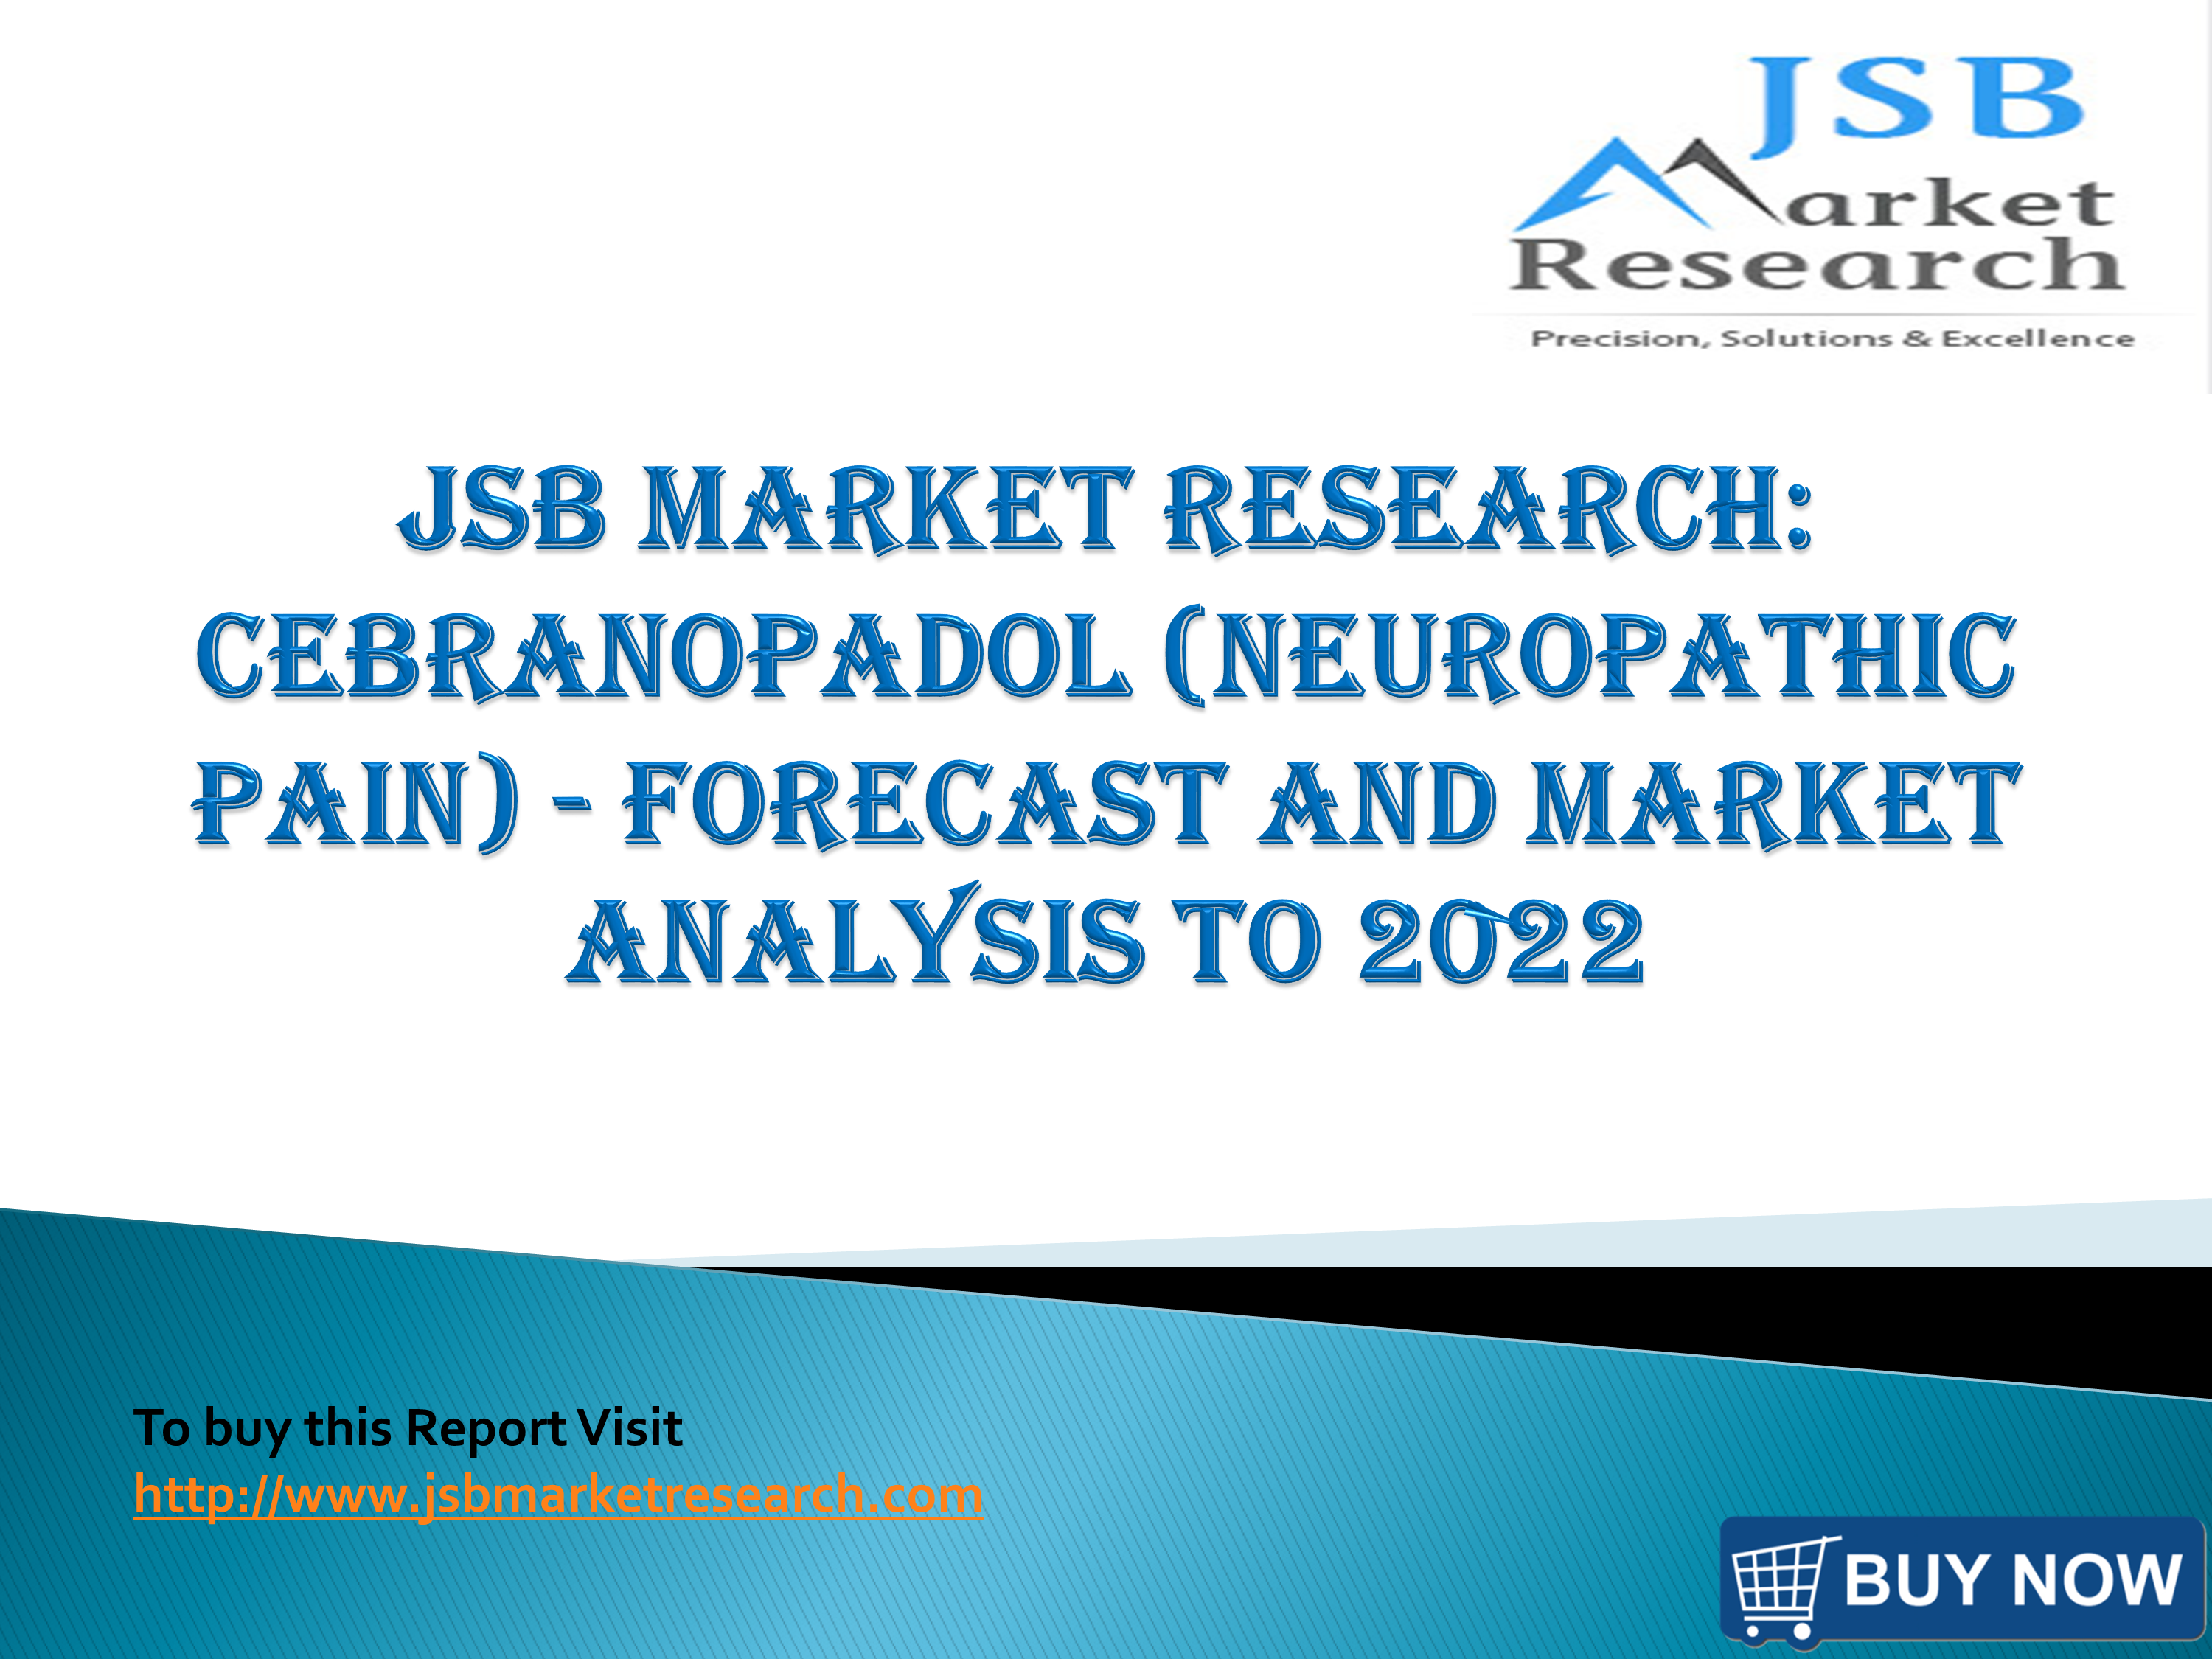 JSB Market Research - Healthcare/Medical Simulation Market By Product, Technology, End-Users